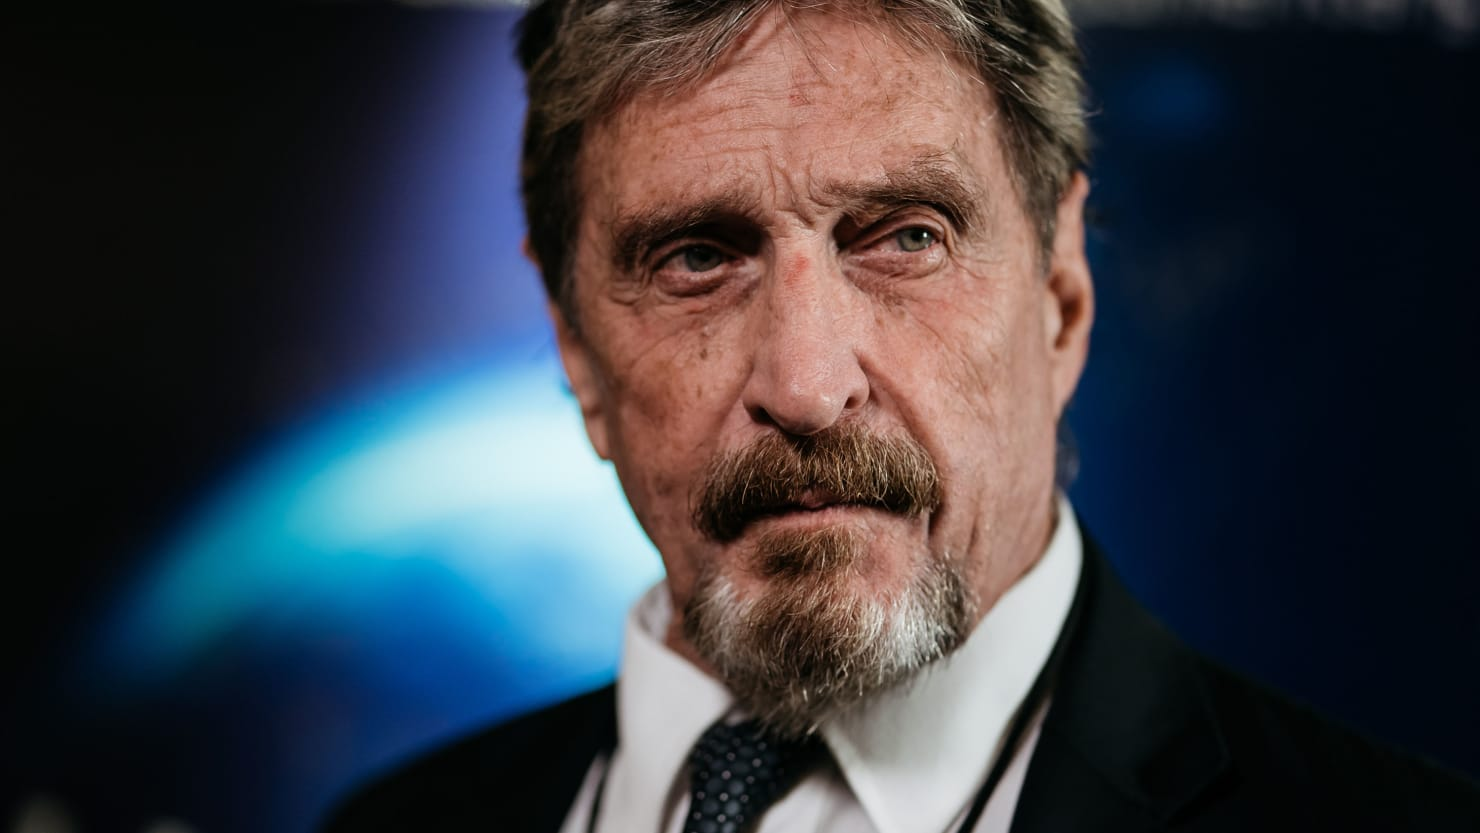 Eccentric Antivirus Rich particular person John McAfee Accused of Making Tens of millions in Illegal Crypto Schemes